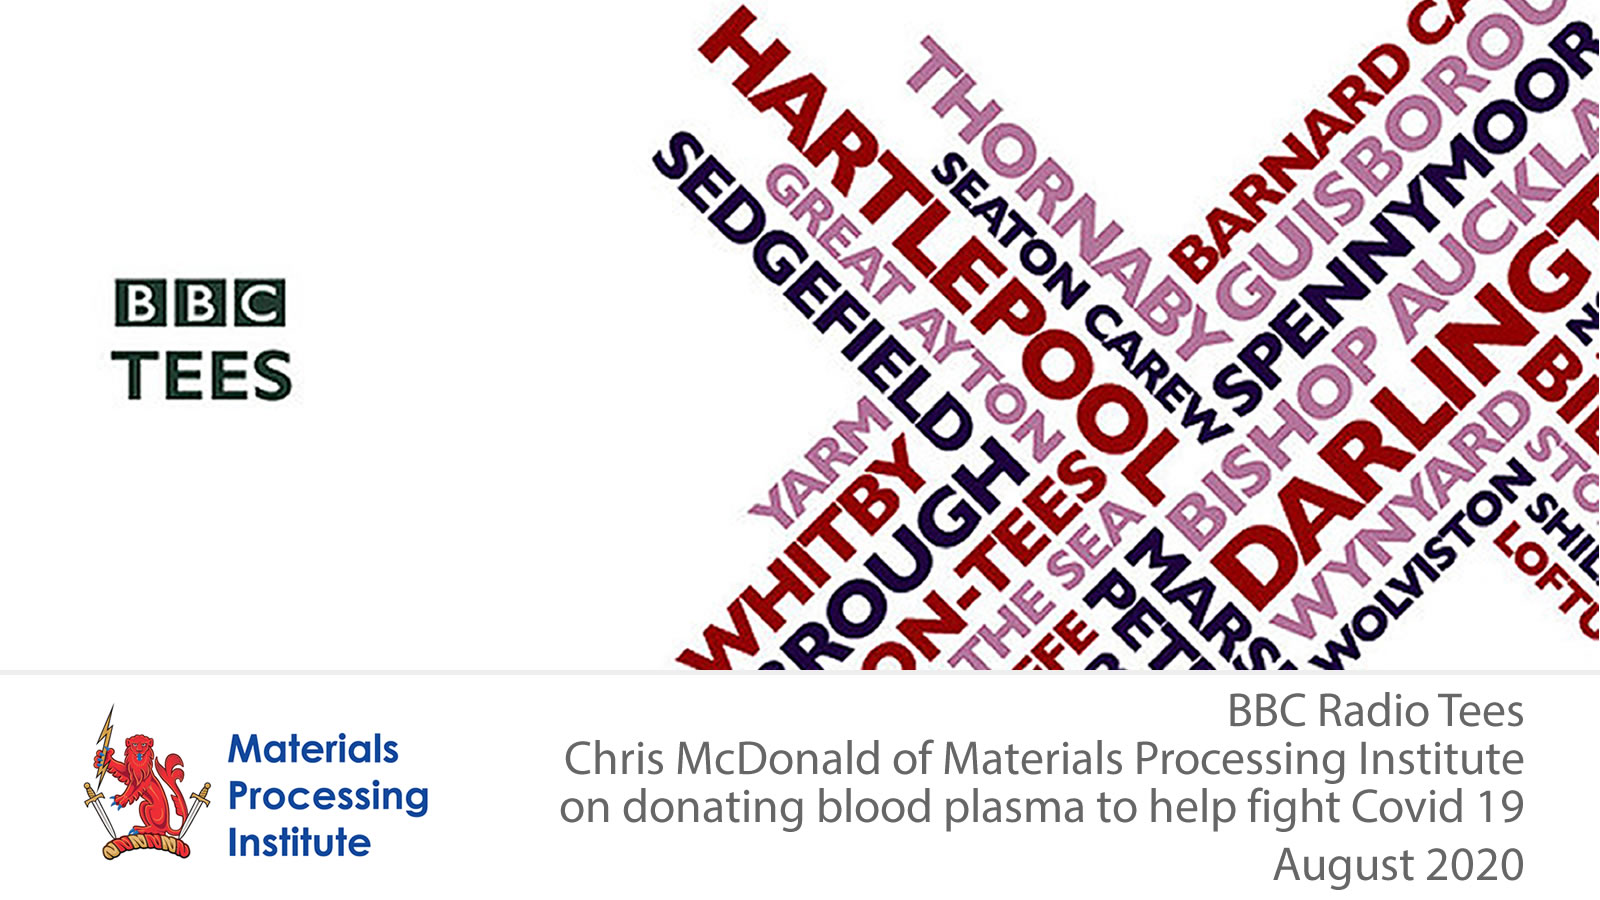 Chris McDonald of Materials Processing Institute on donating blood plasma to help fight Covid 19 - August 2020